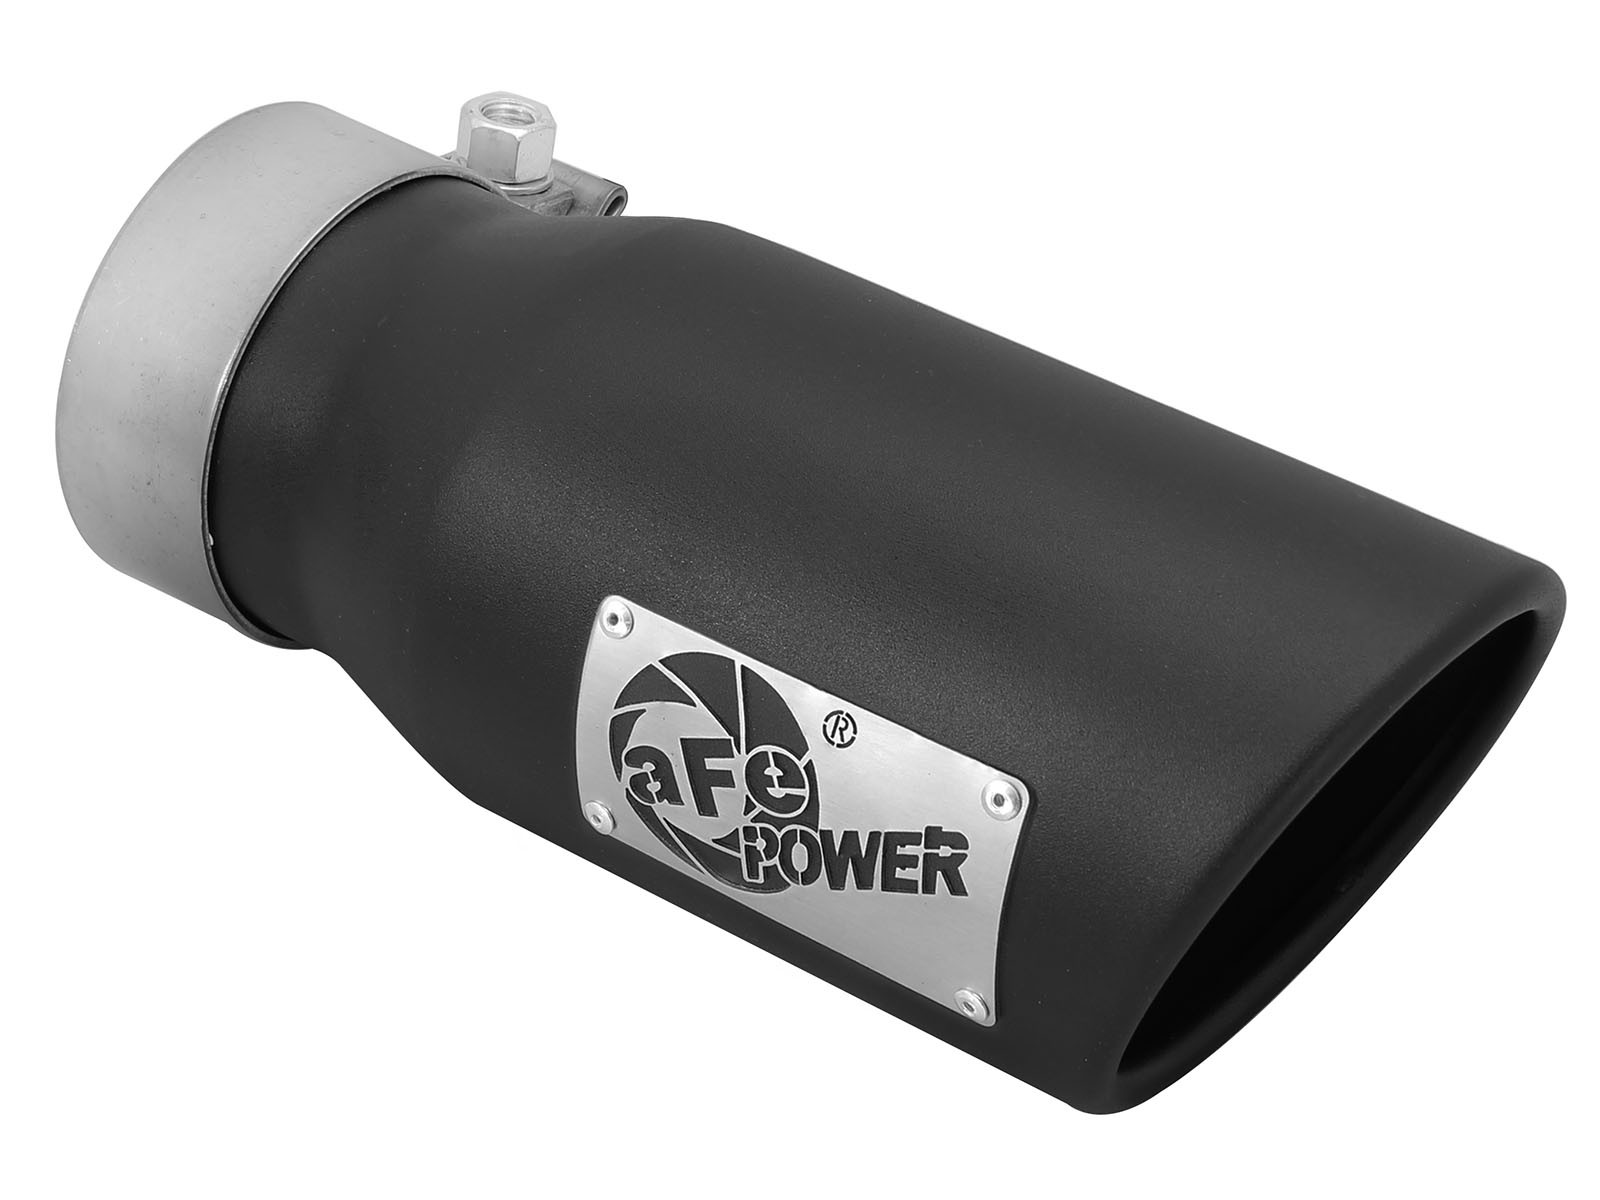 "aFe POWER 49T30401-B09 MACH Force-Xp 3"" 304 Stainless Steel Exhaust Tip"